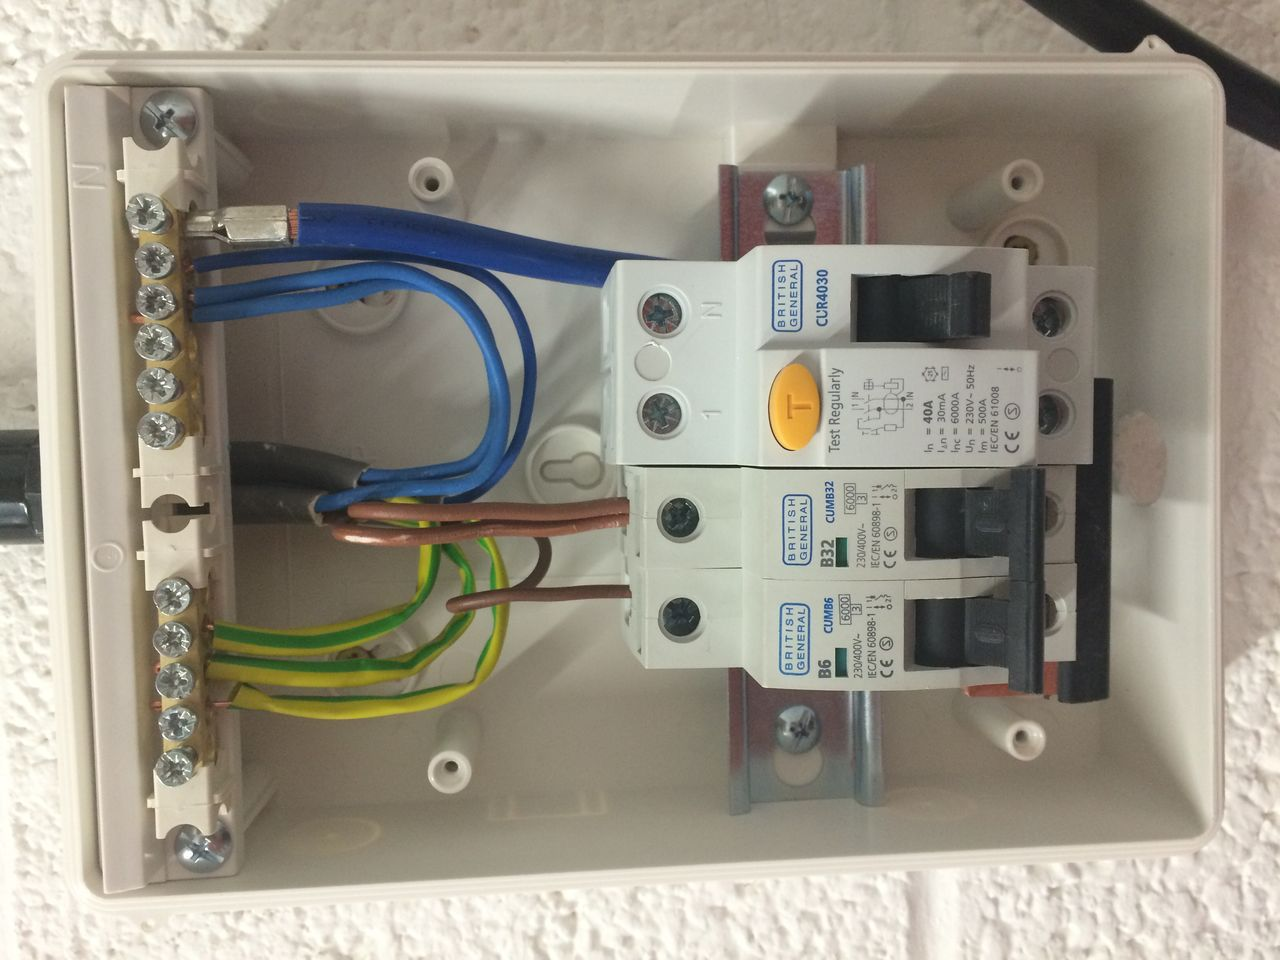 medium resolution of fuse box in garage wiring diagram expert old fuse box in garage fuse box in garage